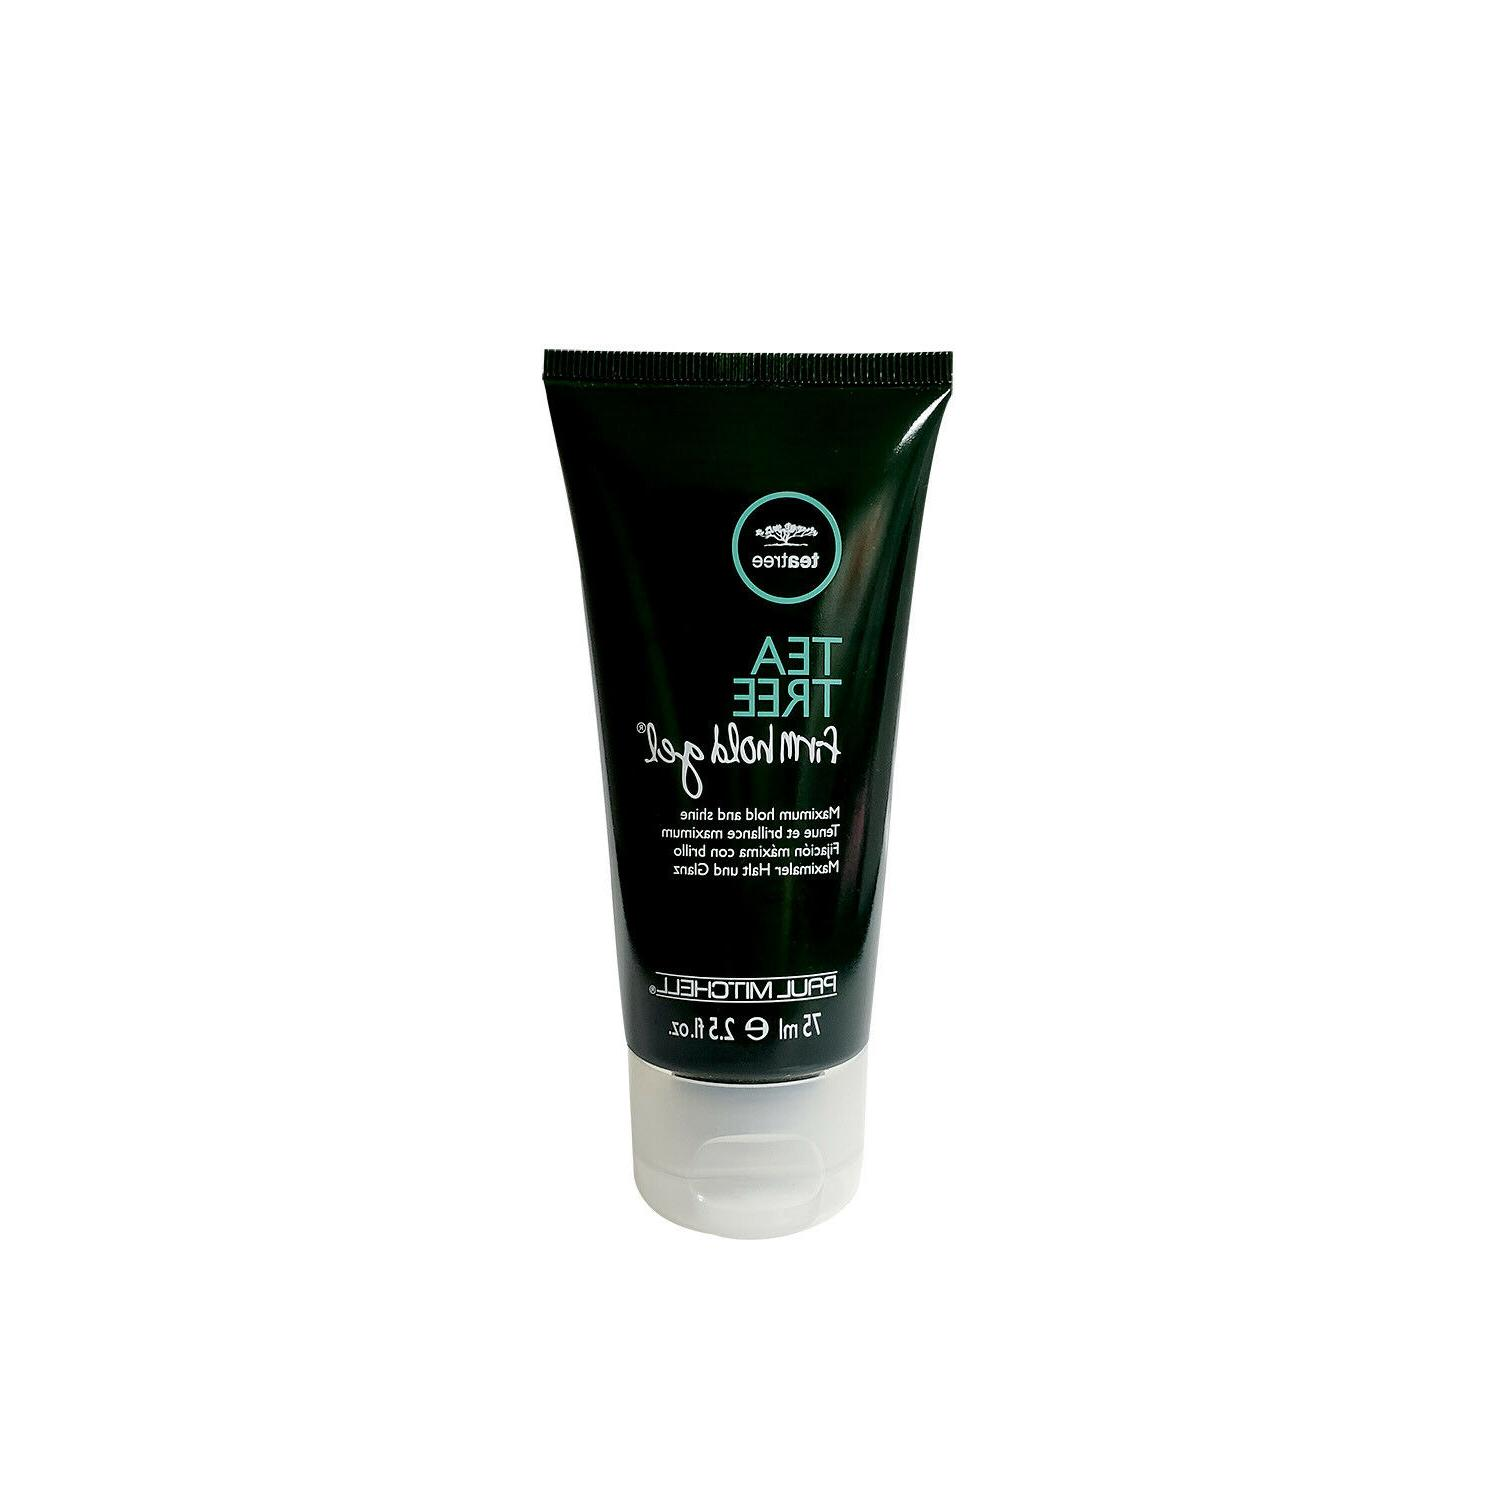 Paul Mitchell Tea Tree Special Shampoo 2.5 oz